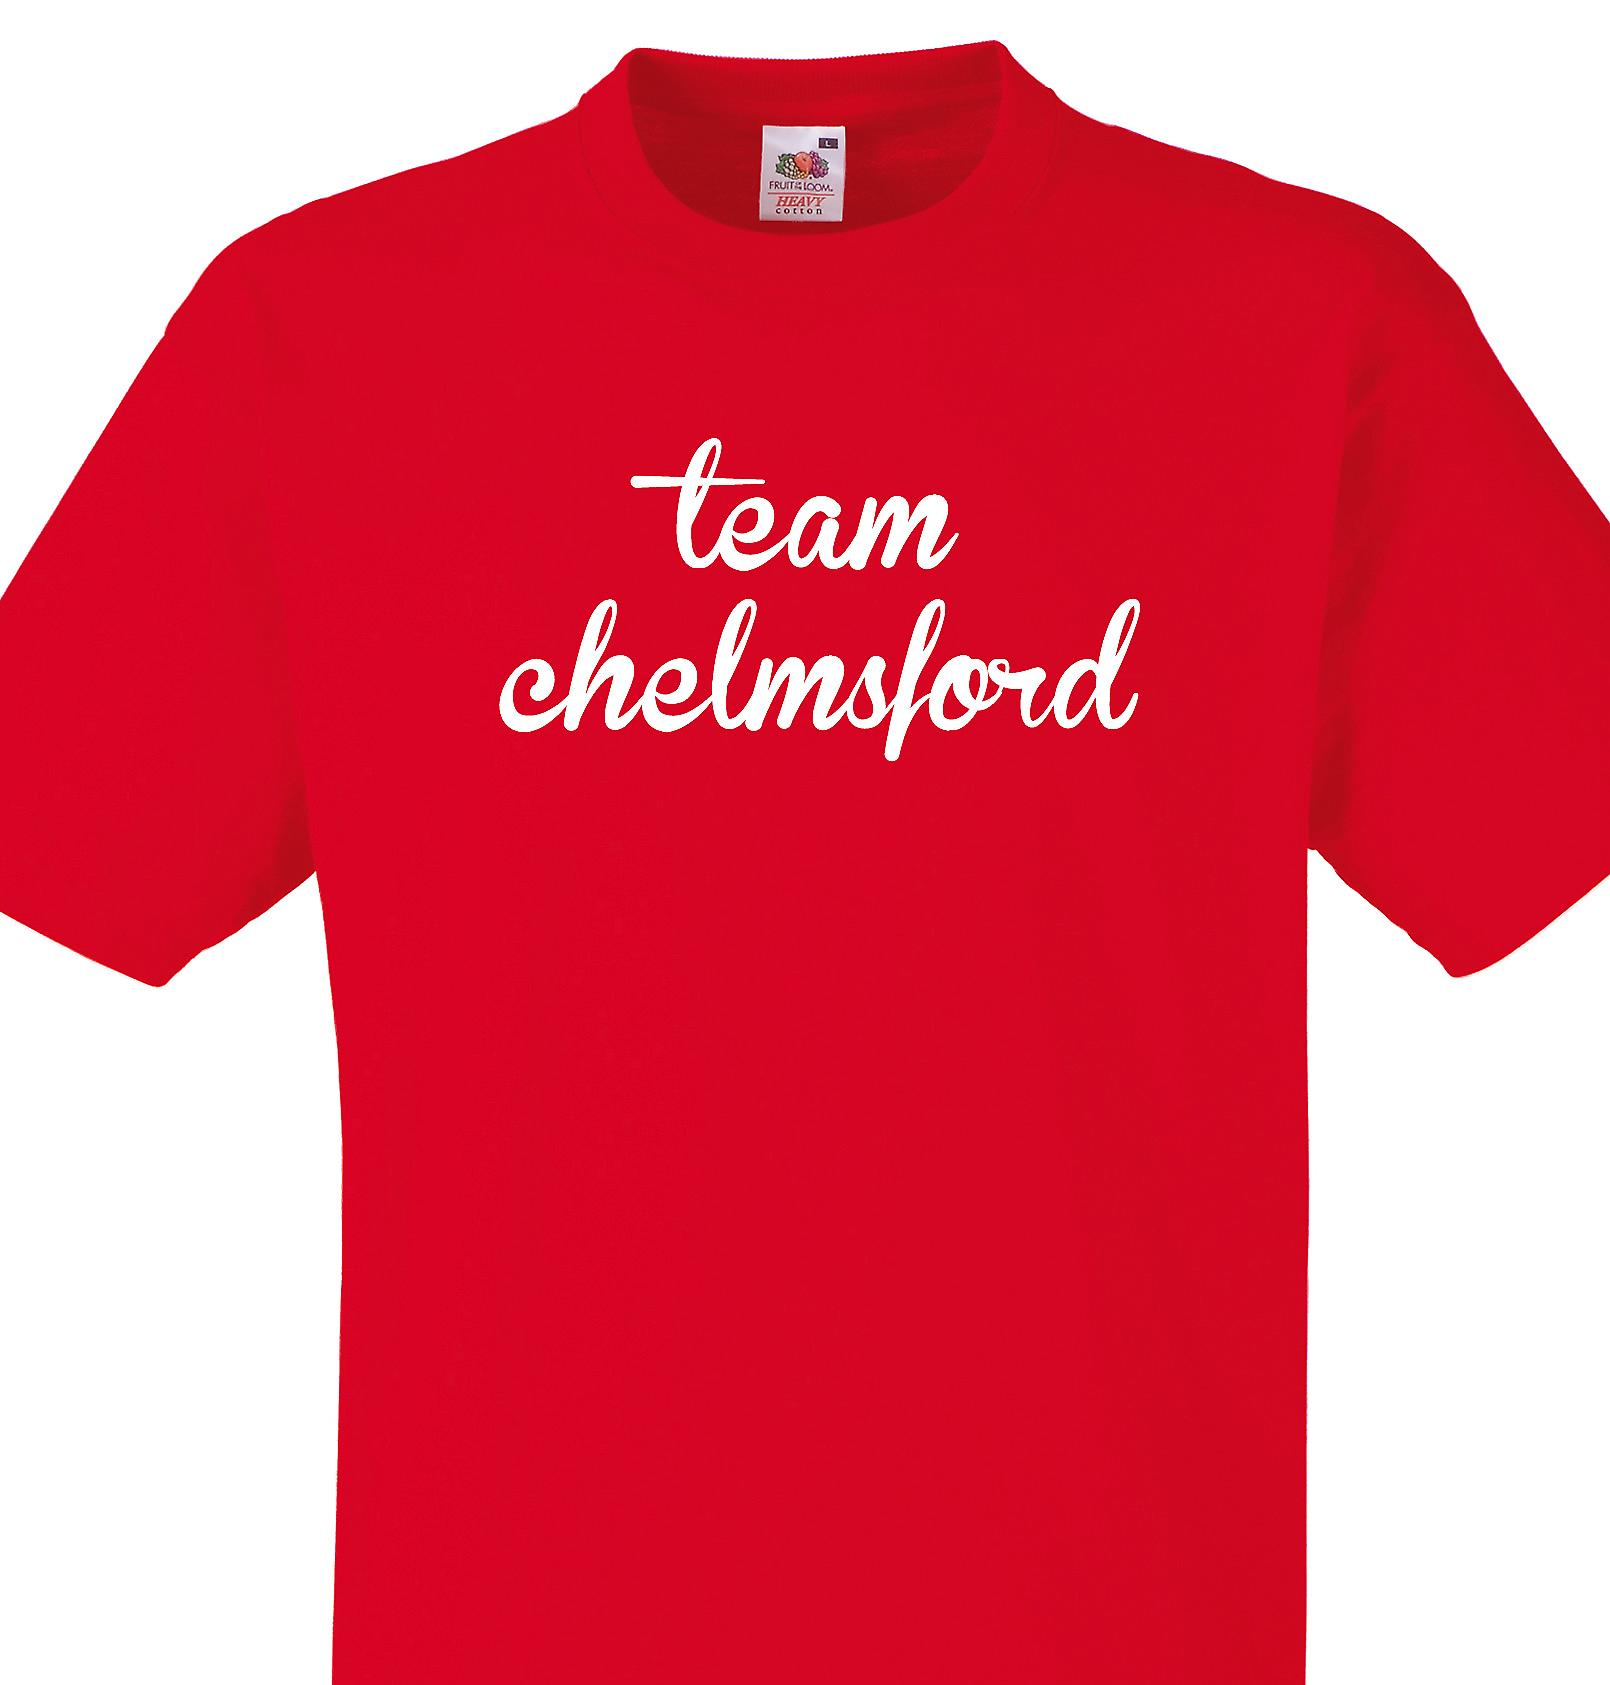 Team Chelmsford Red T shirt